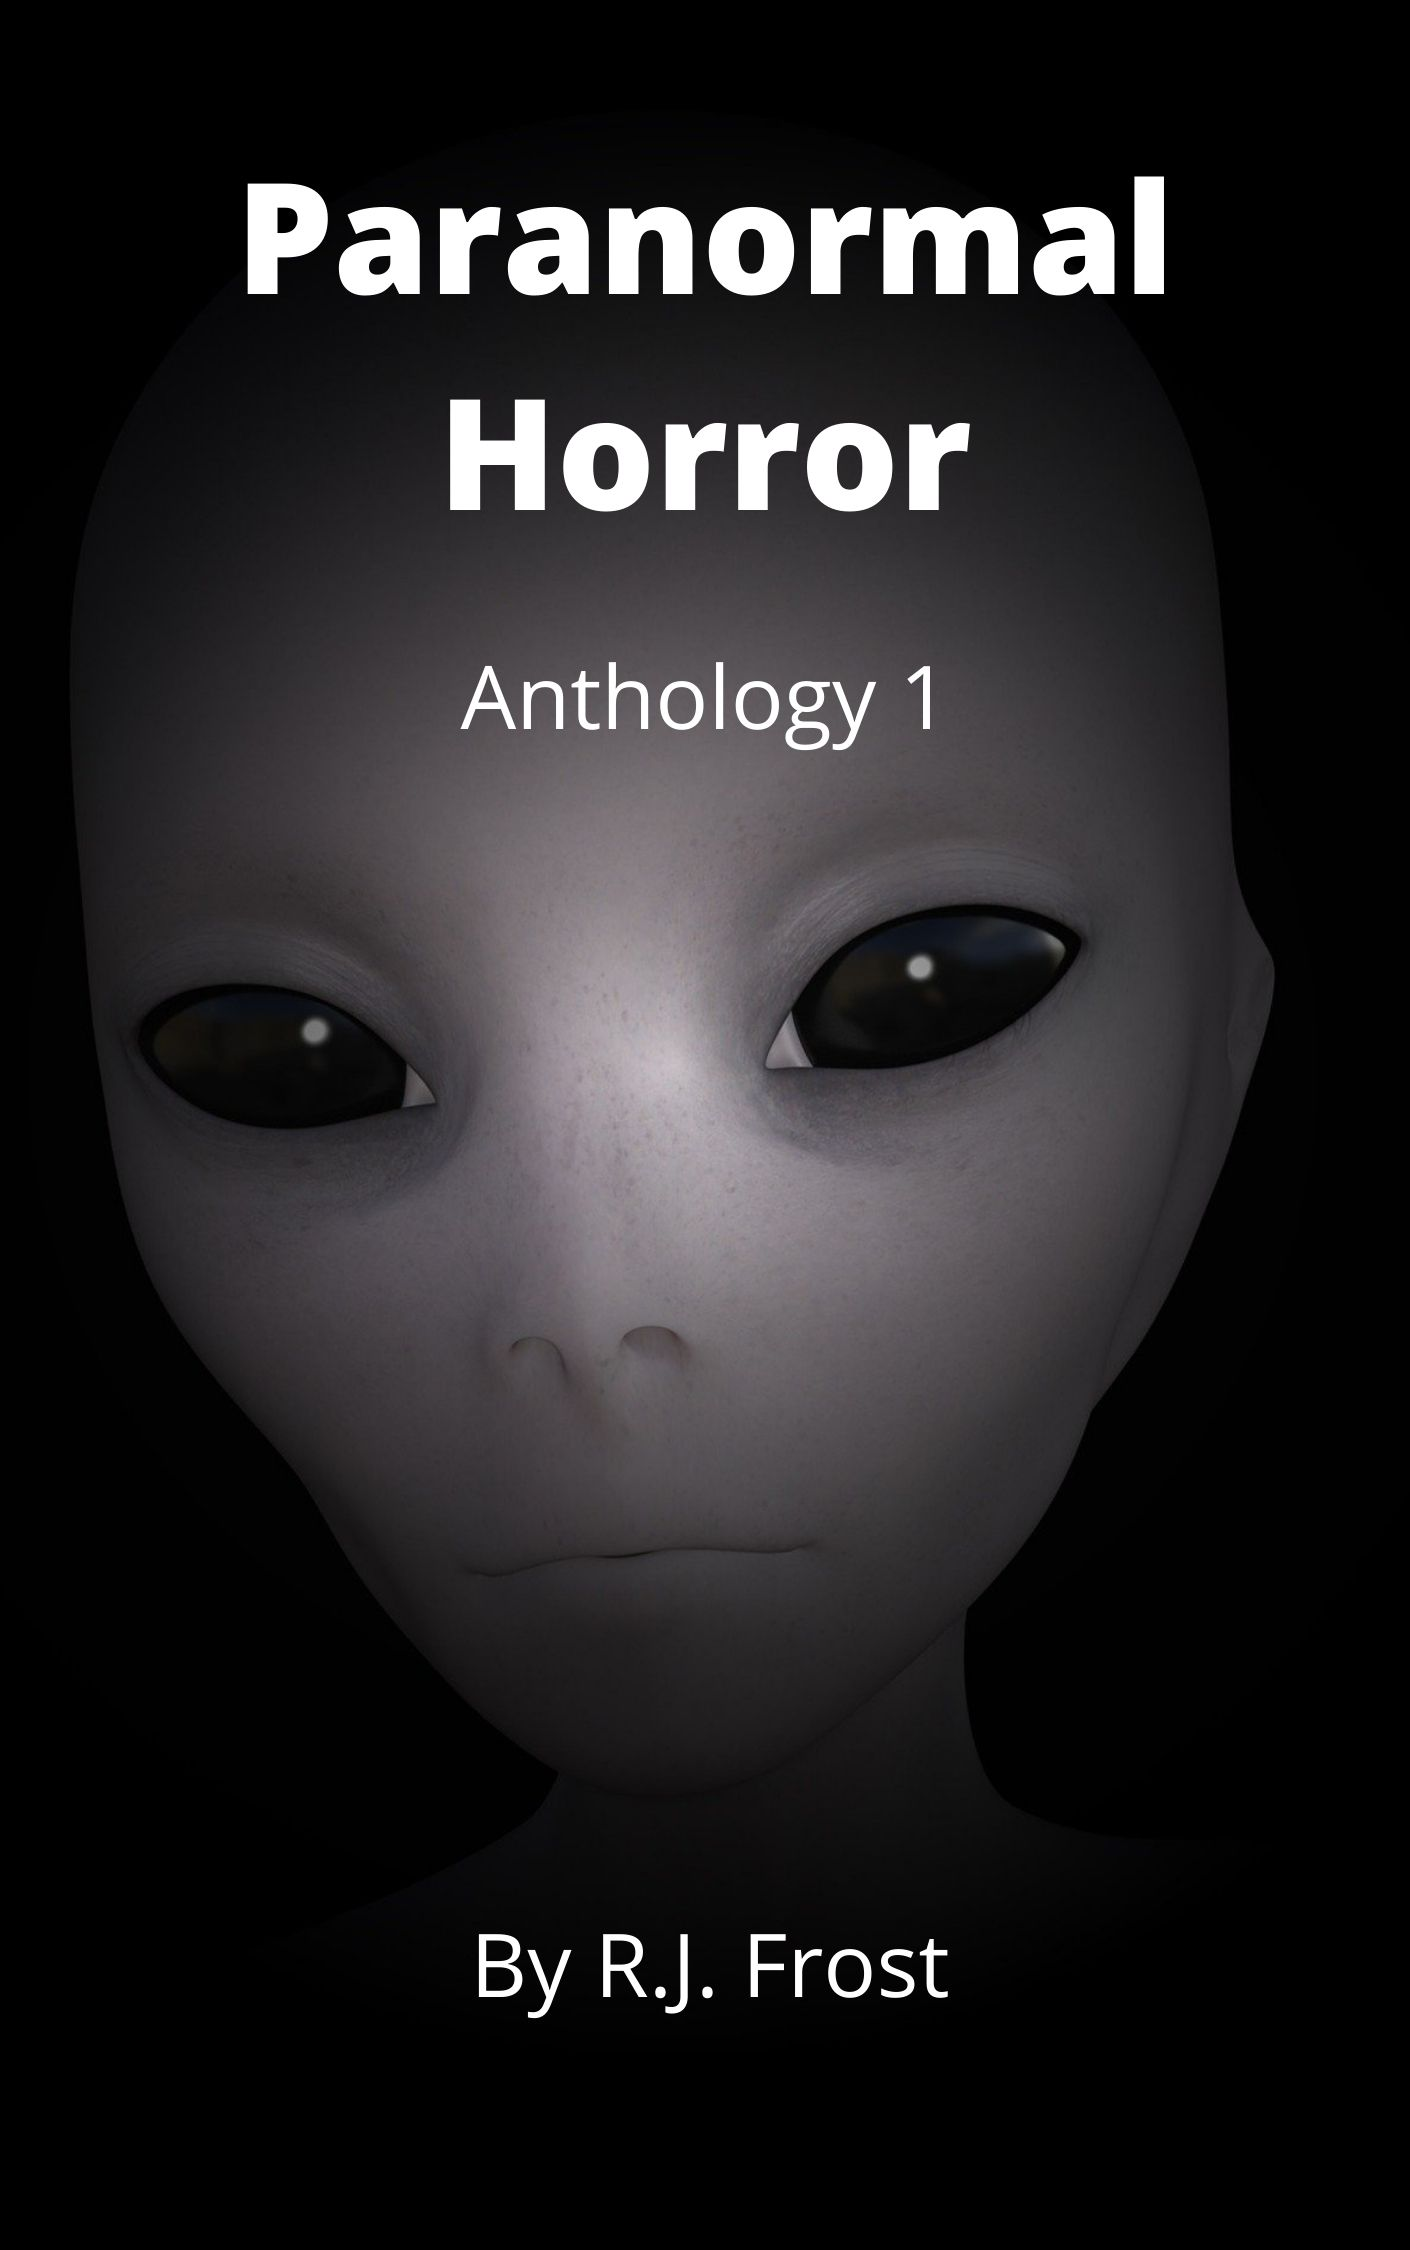 Paranormal Horror: Anthology 1, by R.J. Frost